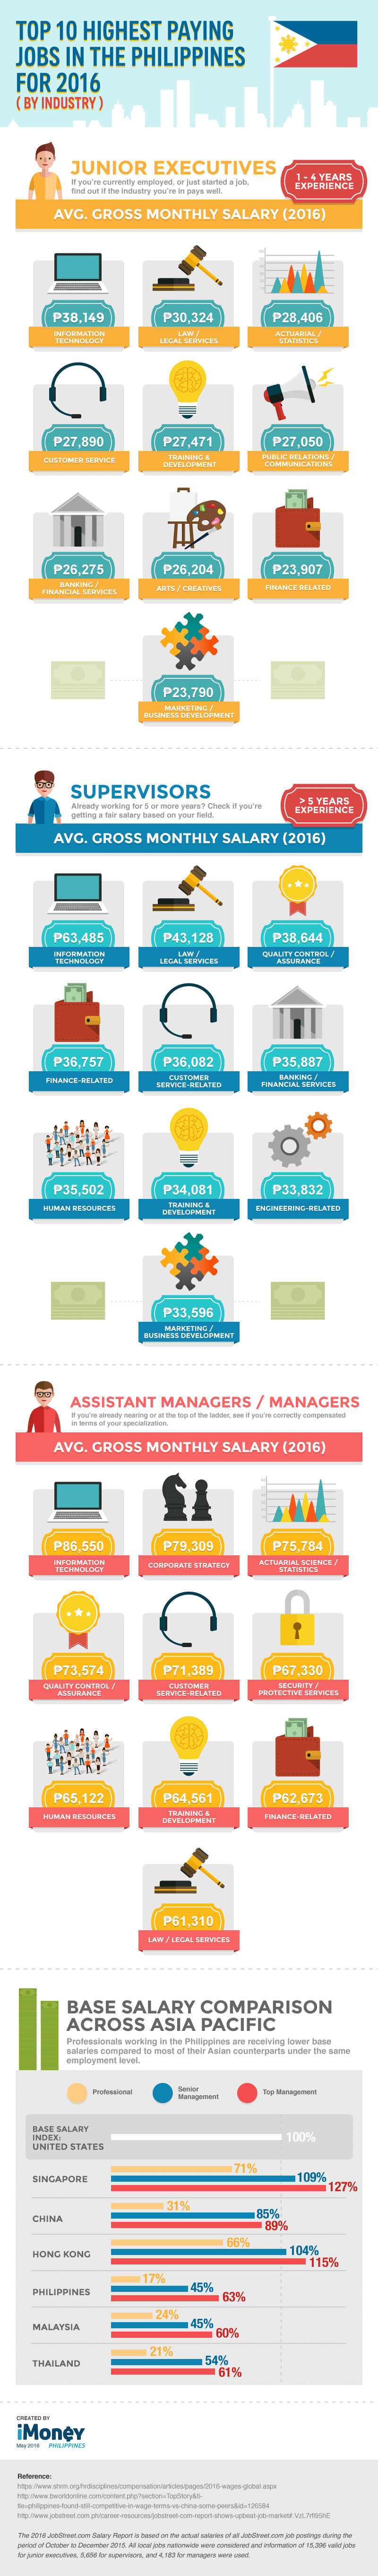 top 10 highest paying jobs in Philippines infographic image